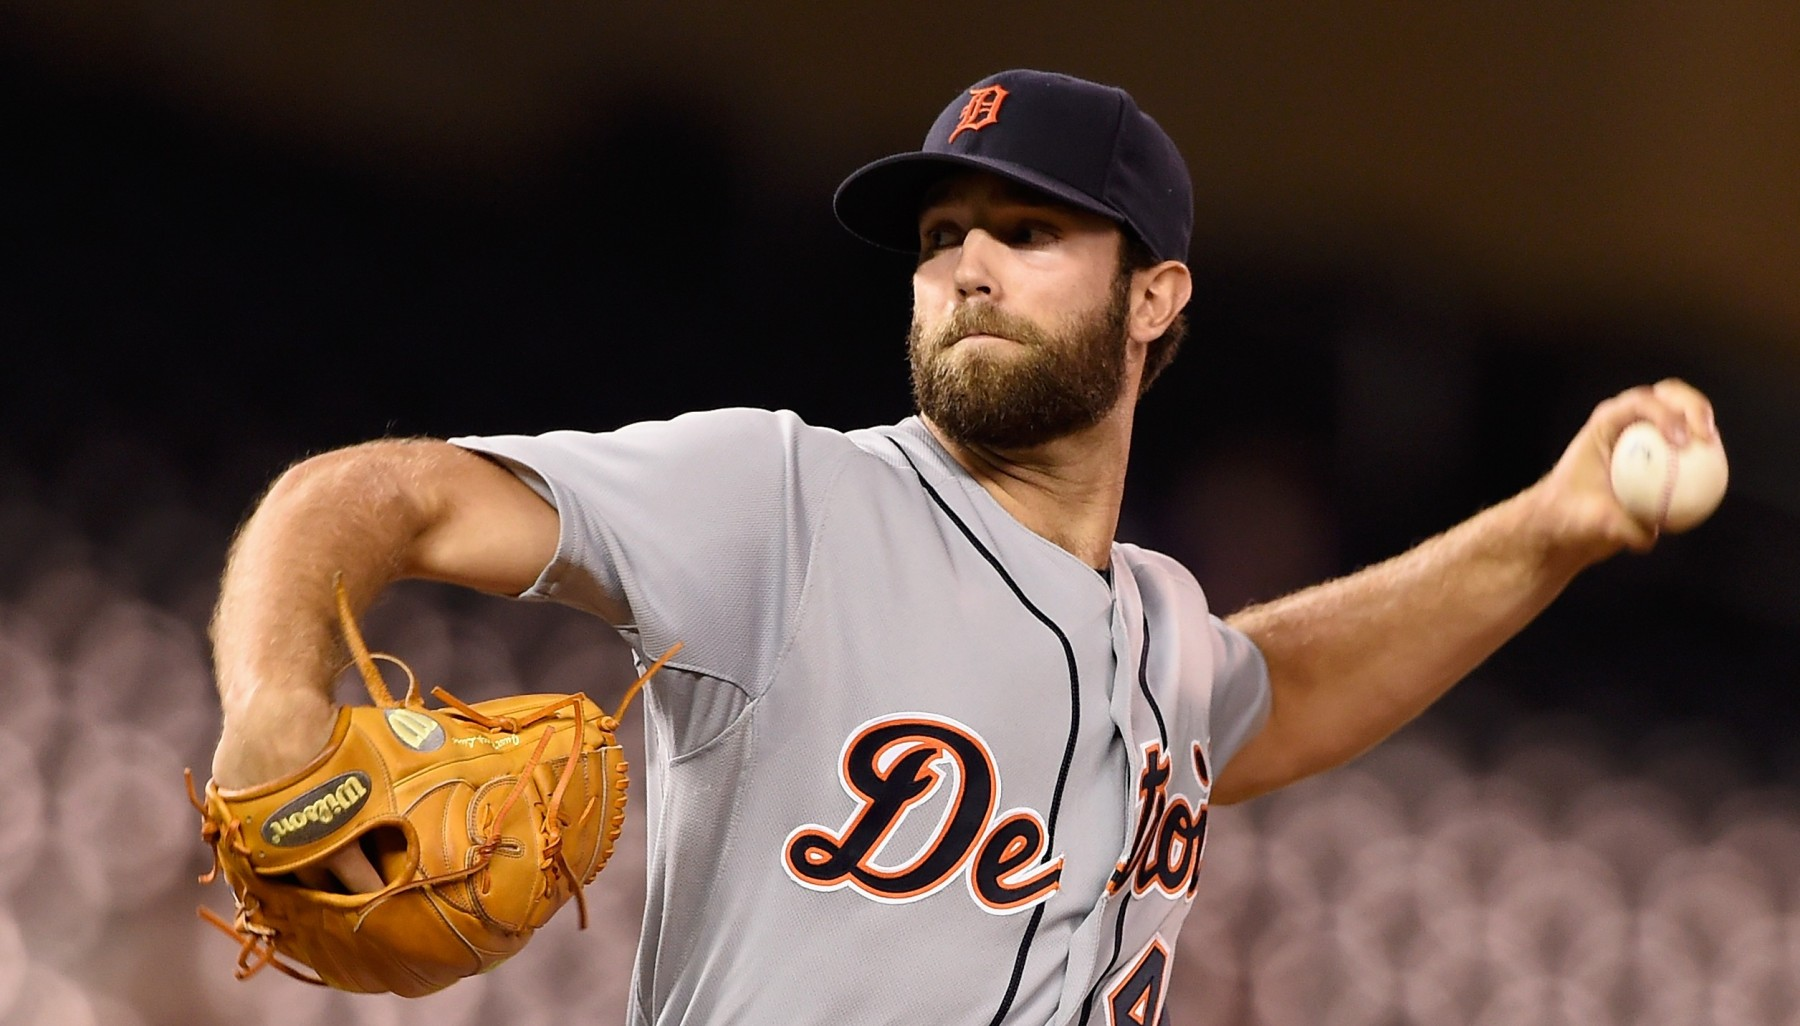 MINNEAPOLIS, MN - SEPTEMBER 16: Daniel Norris #44 of the Detroit Tigers delivers a pitch against the Minnesota Twins during the first inning of the game on September 16, 2015 at Target Field in Minneapolis, Minnesota. (Photo by Hannah Foslien/Getty Images)  https://www.youtube.com/watch?v=wKPa3uVddbU